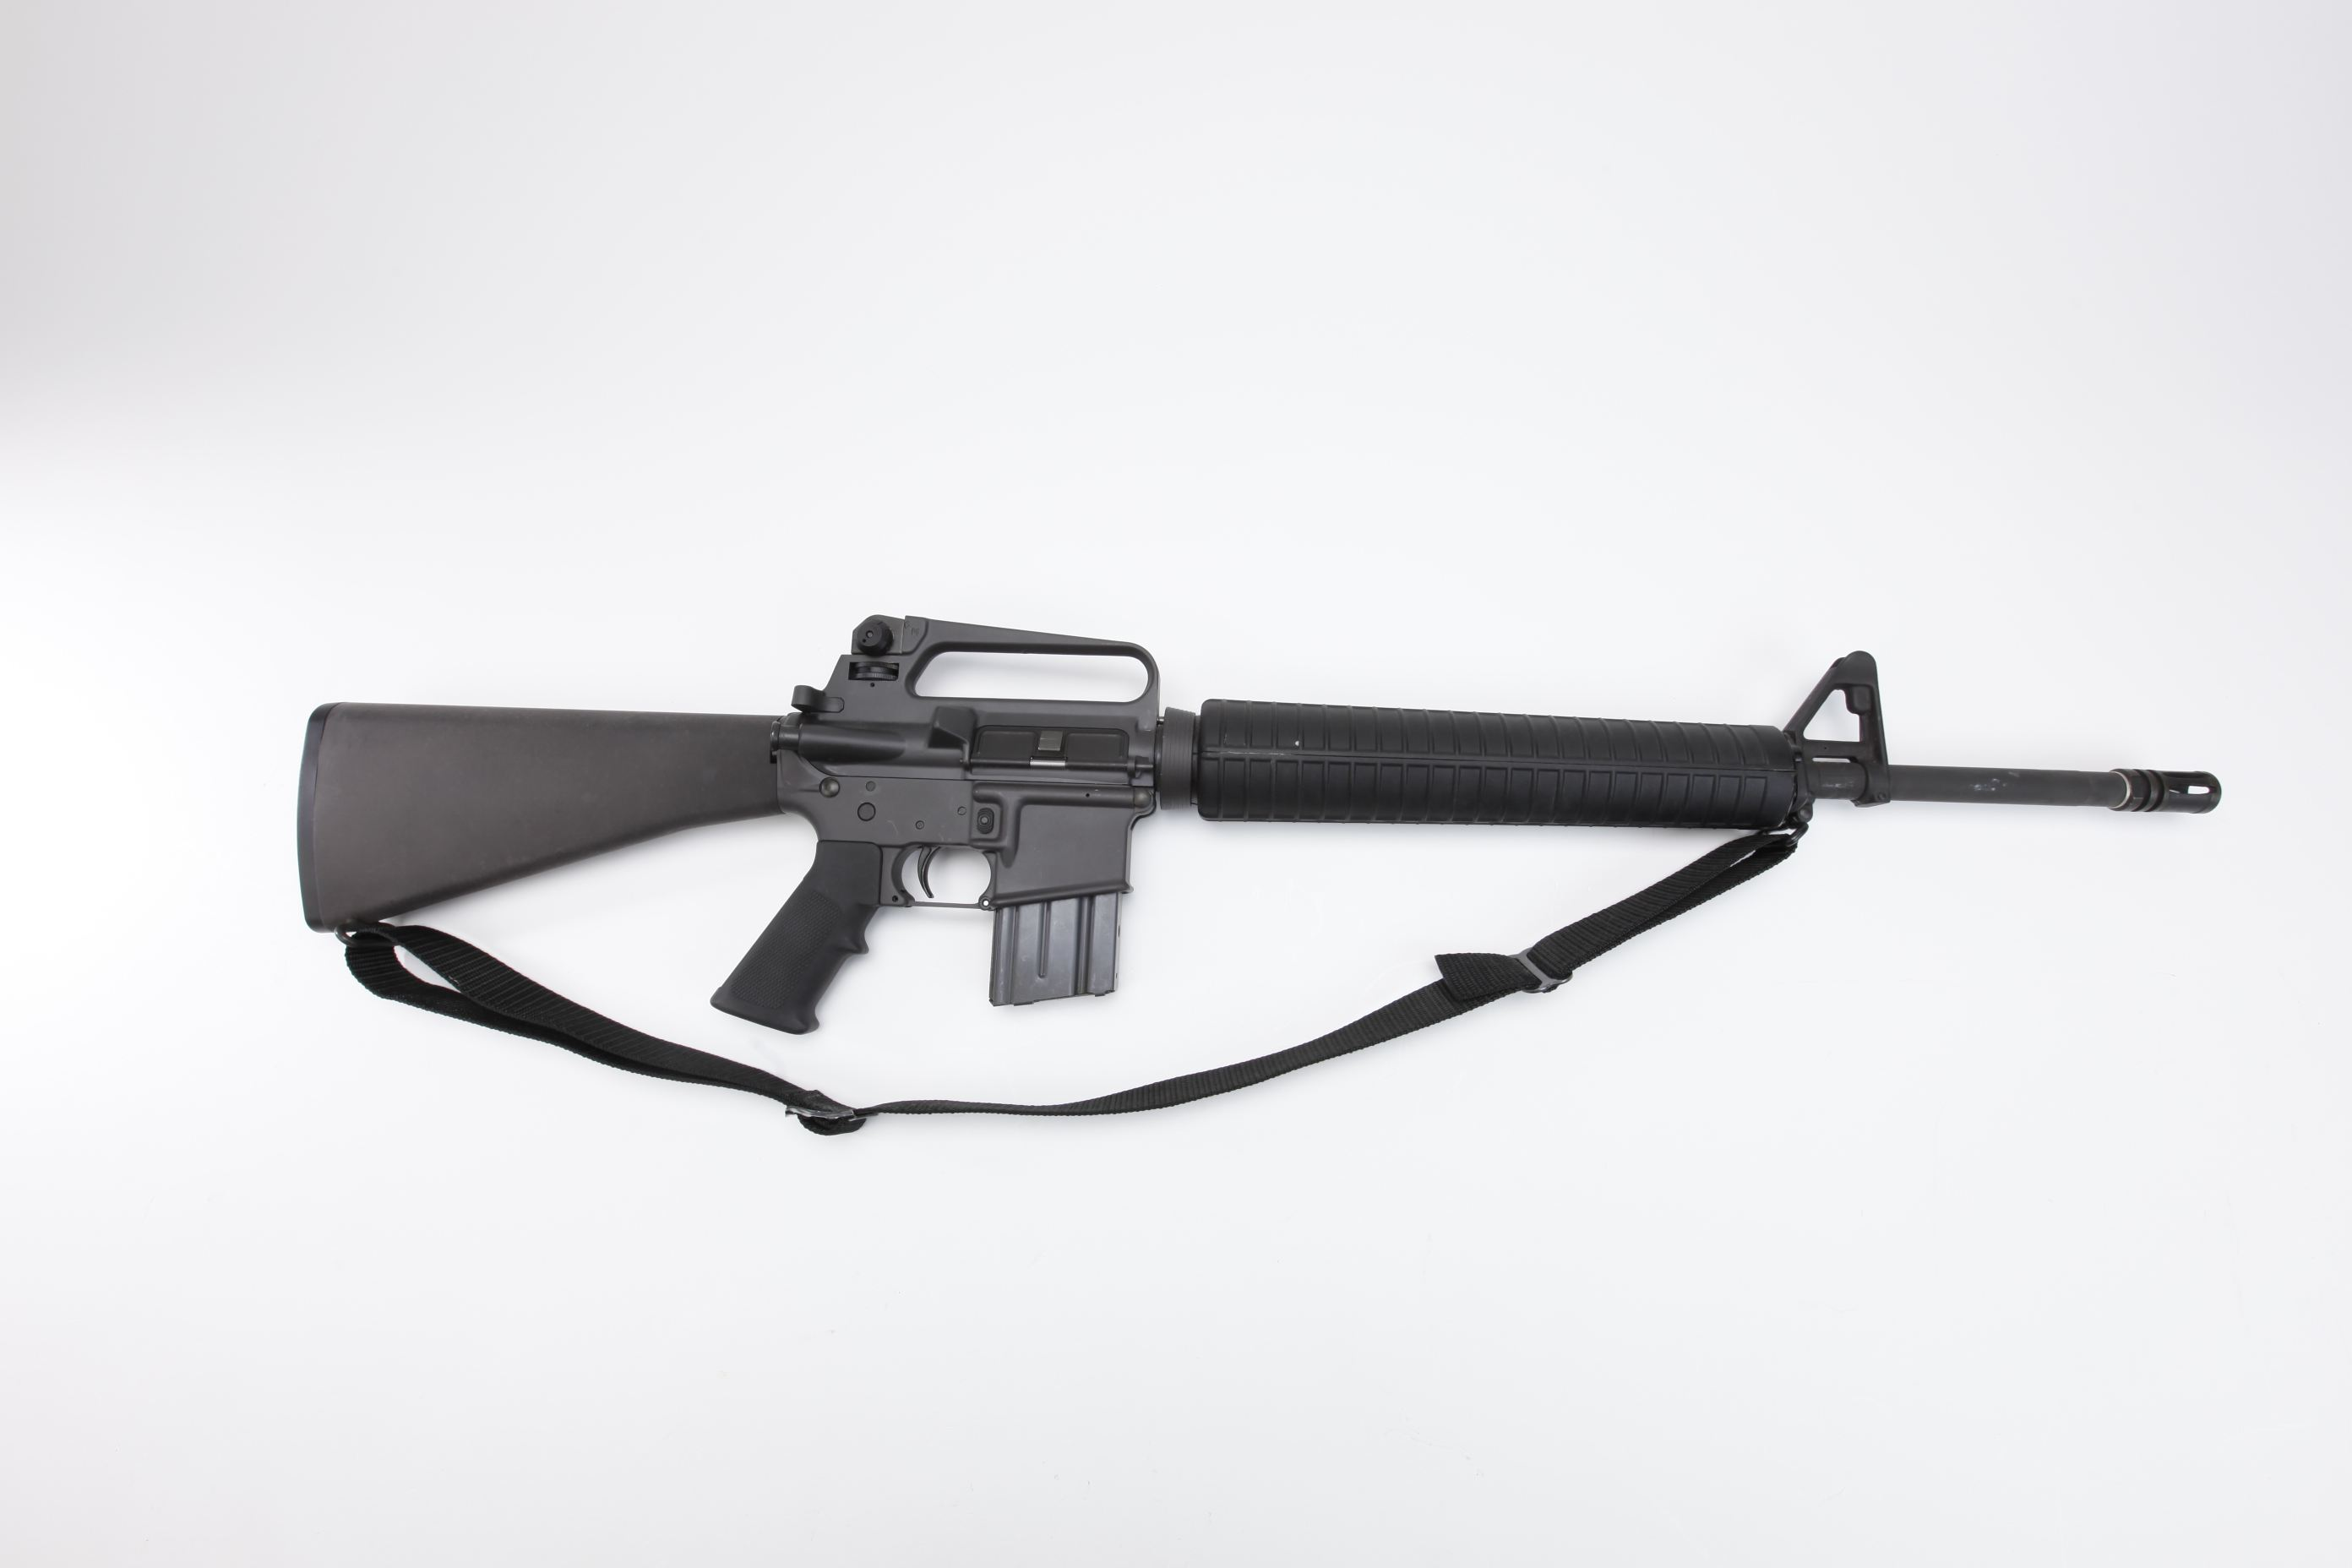 Colt Sporter Target Model AR 15 semi automatic rifle